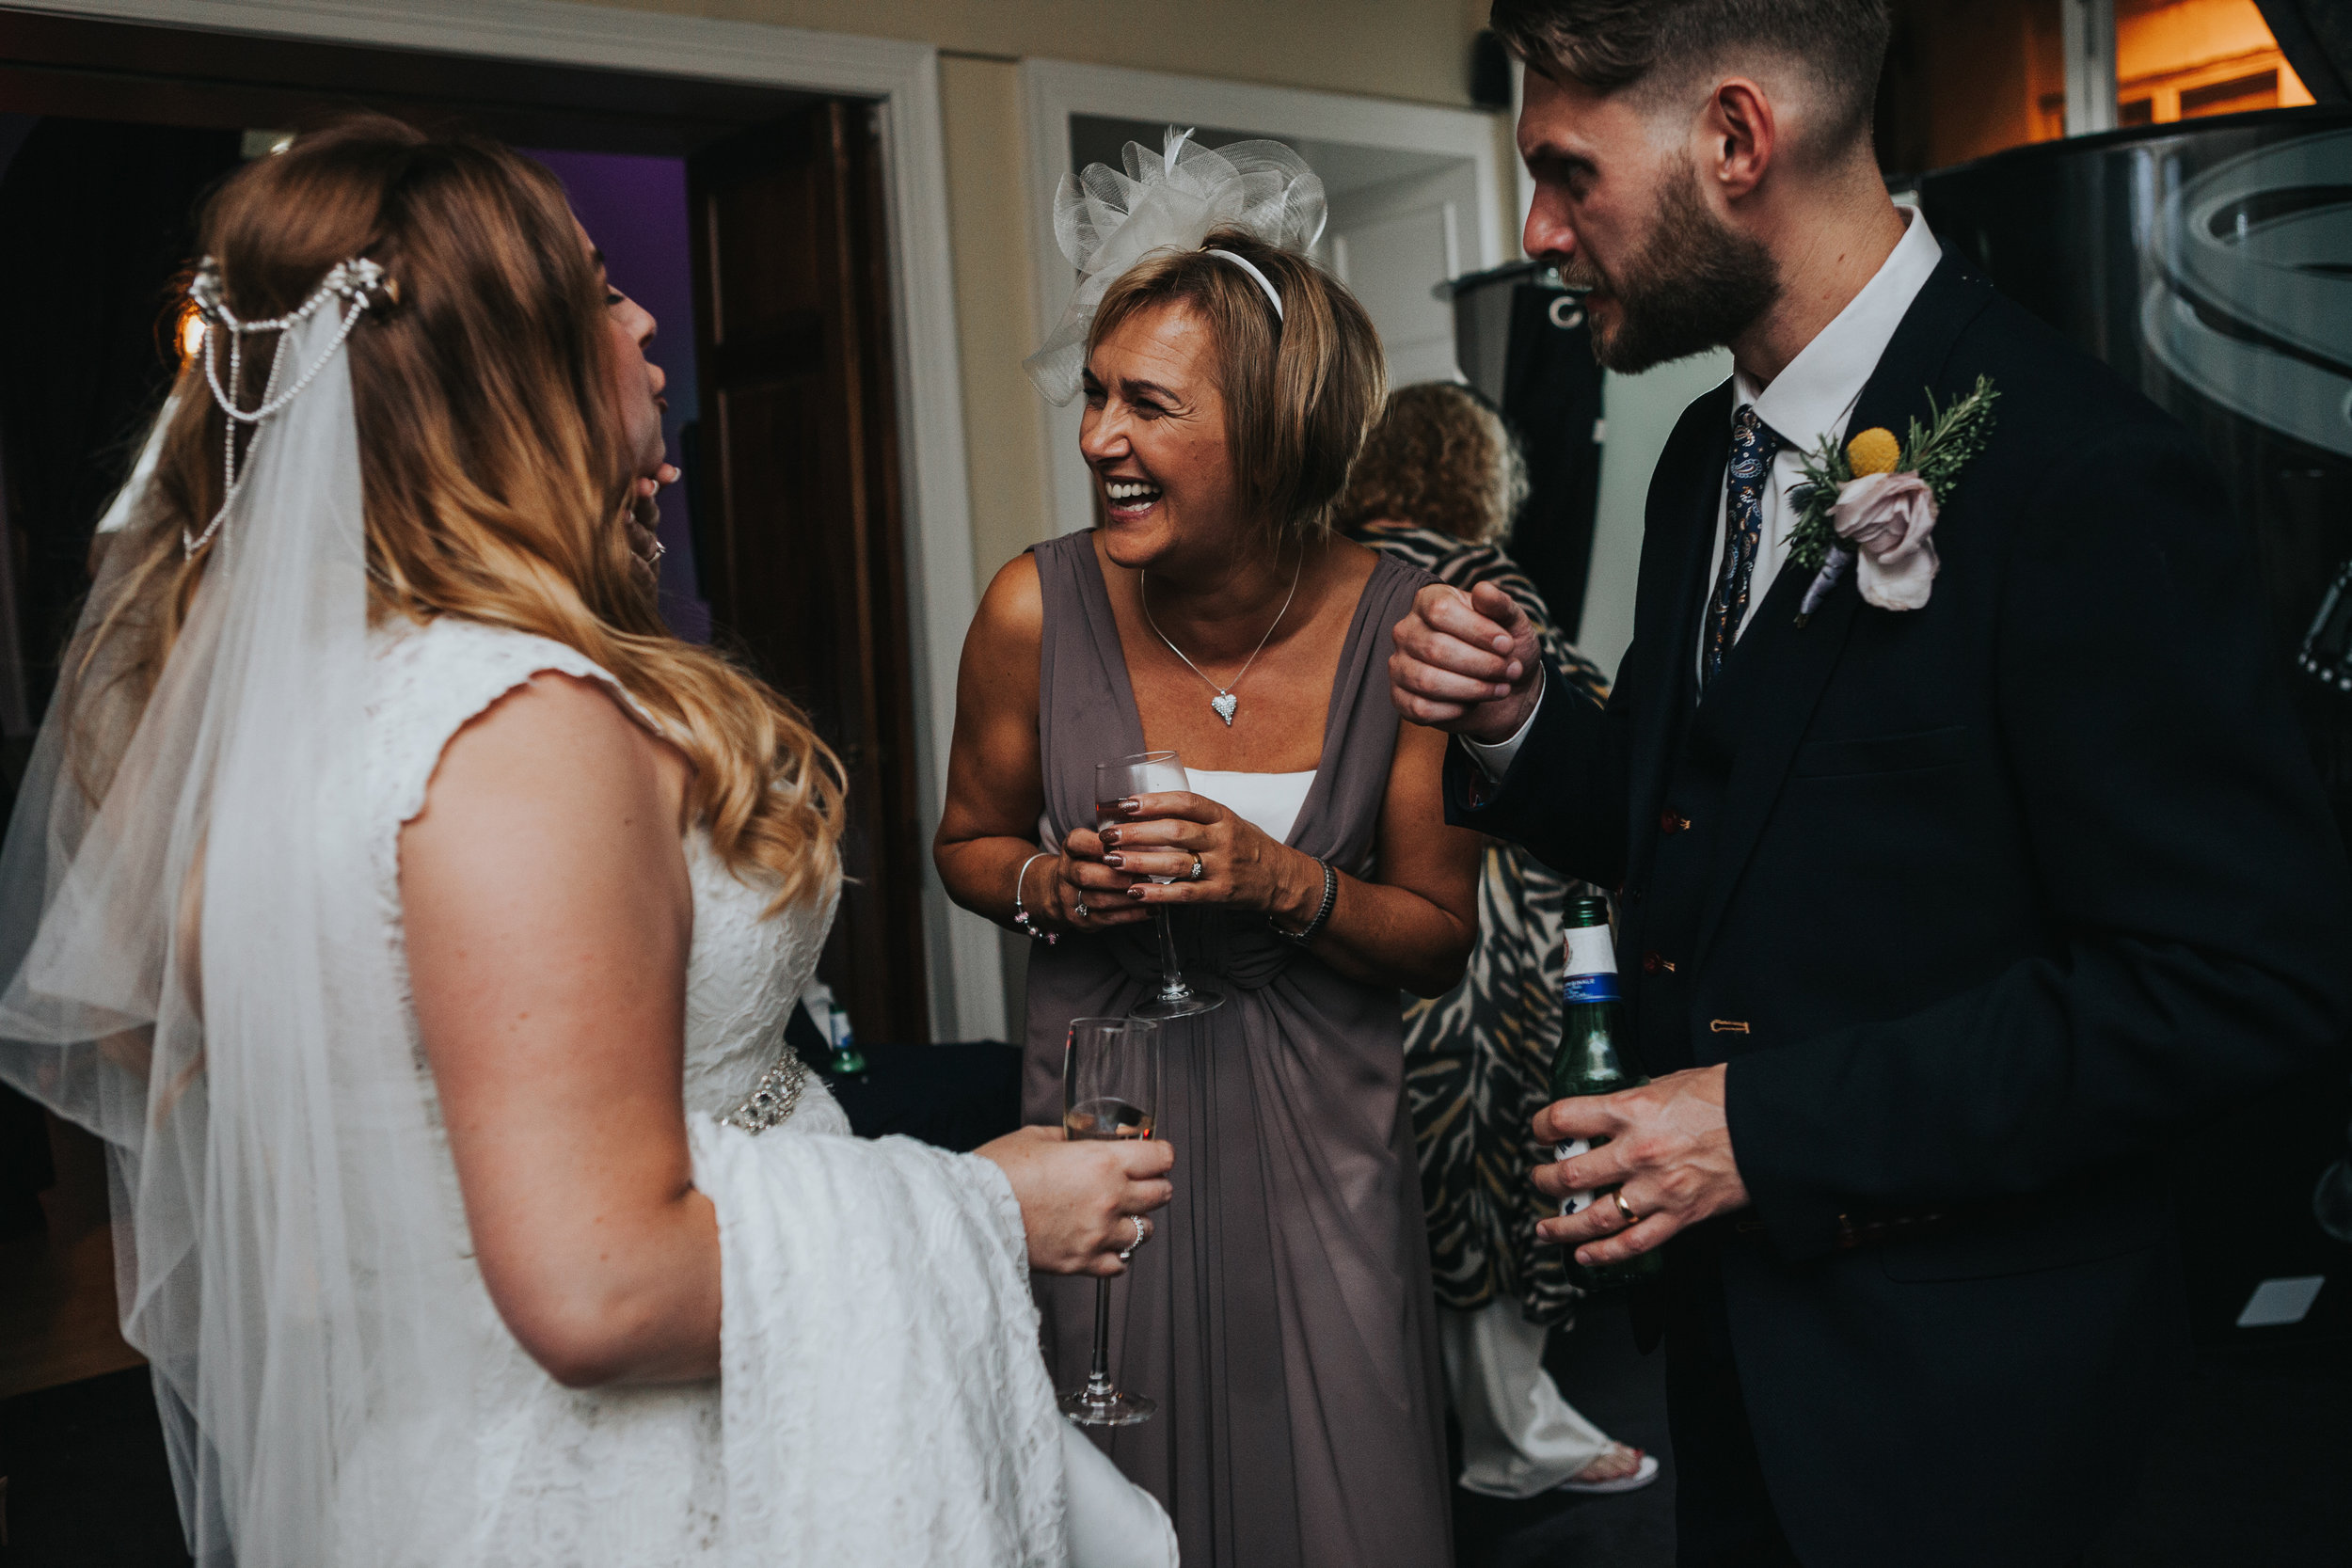 Bride laughs with Wedding Guest.